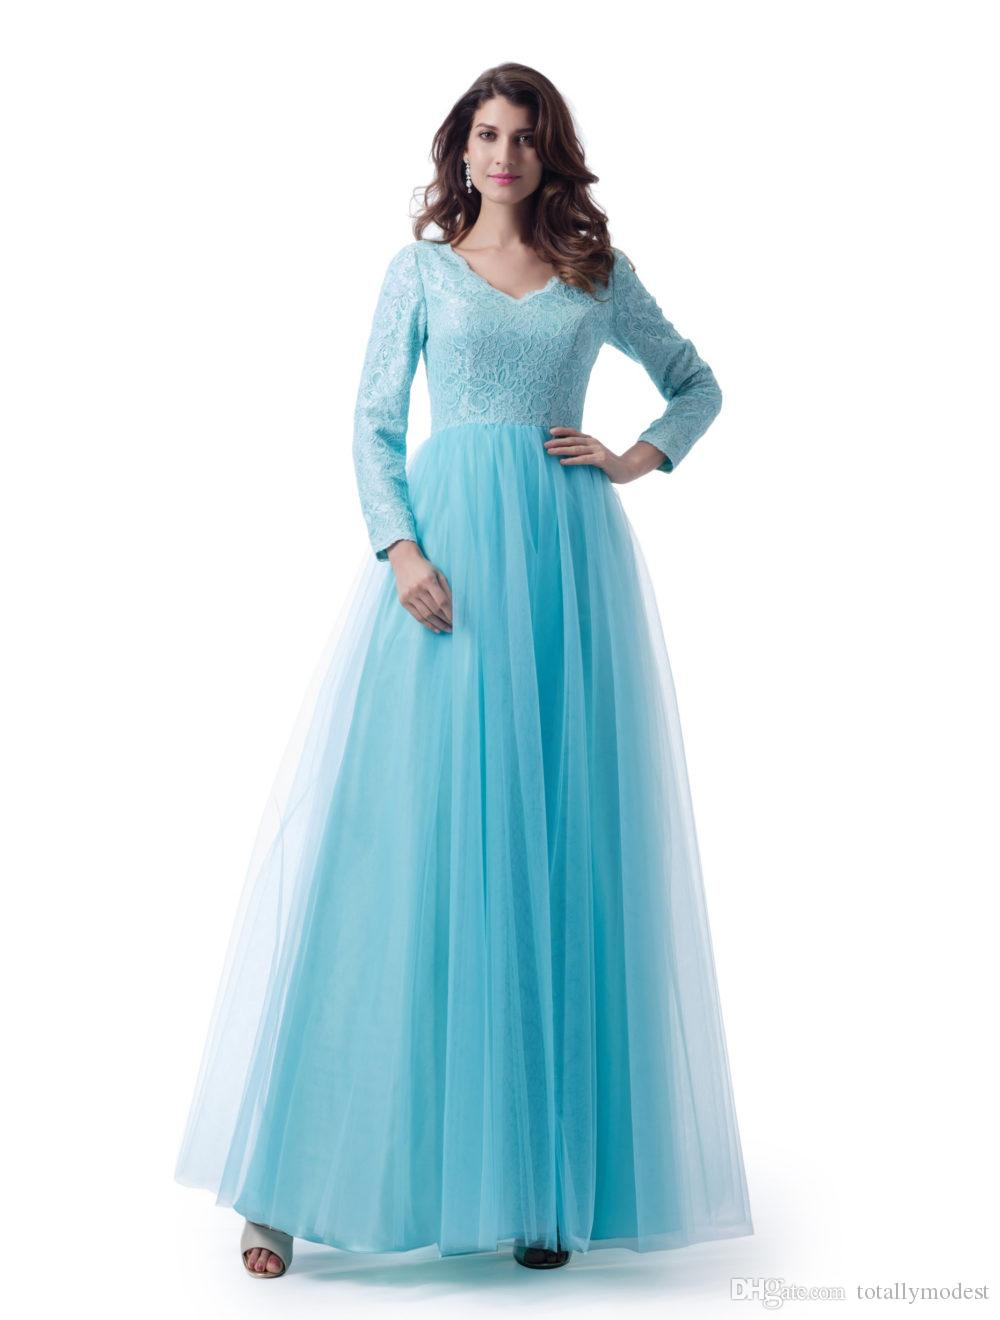 Long Sleeves Blue Modest Wedding Long Bridesmaid Dresses With V Neck Lace Top Tulle Skirt Women LDS Bridesmaid Robes Custom Made